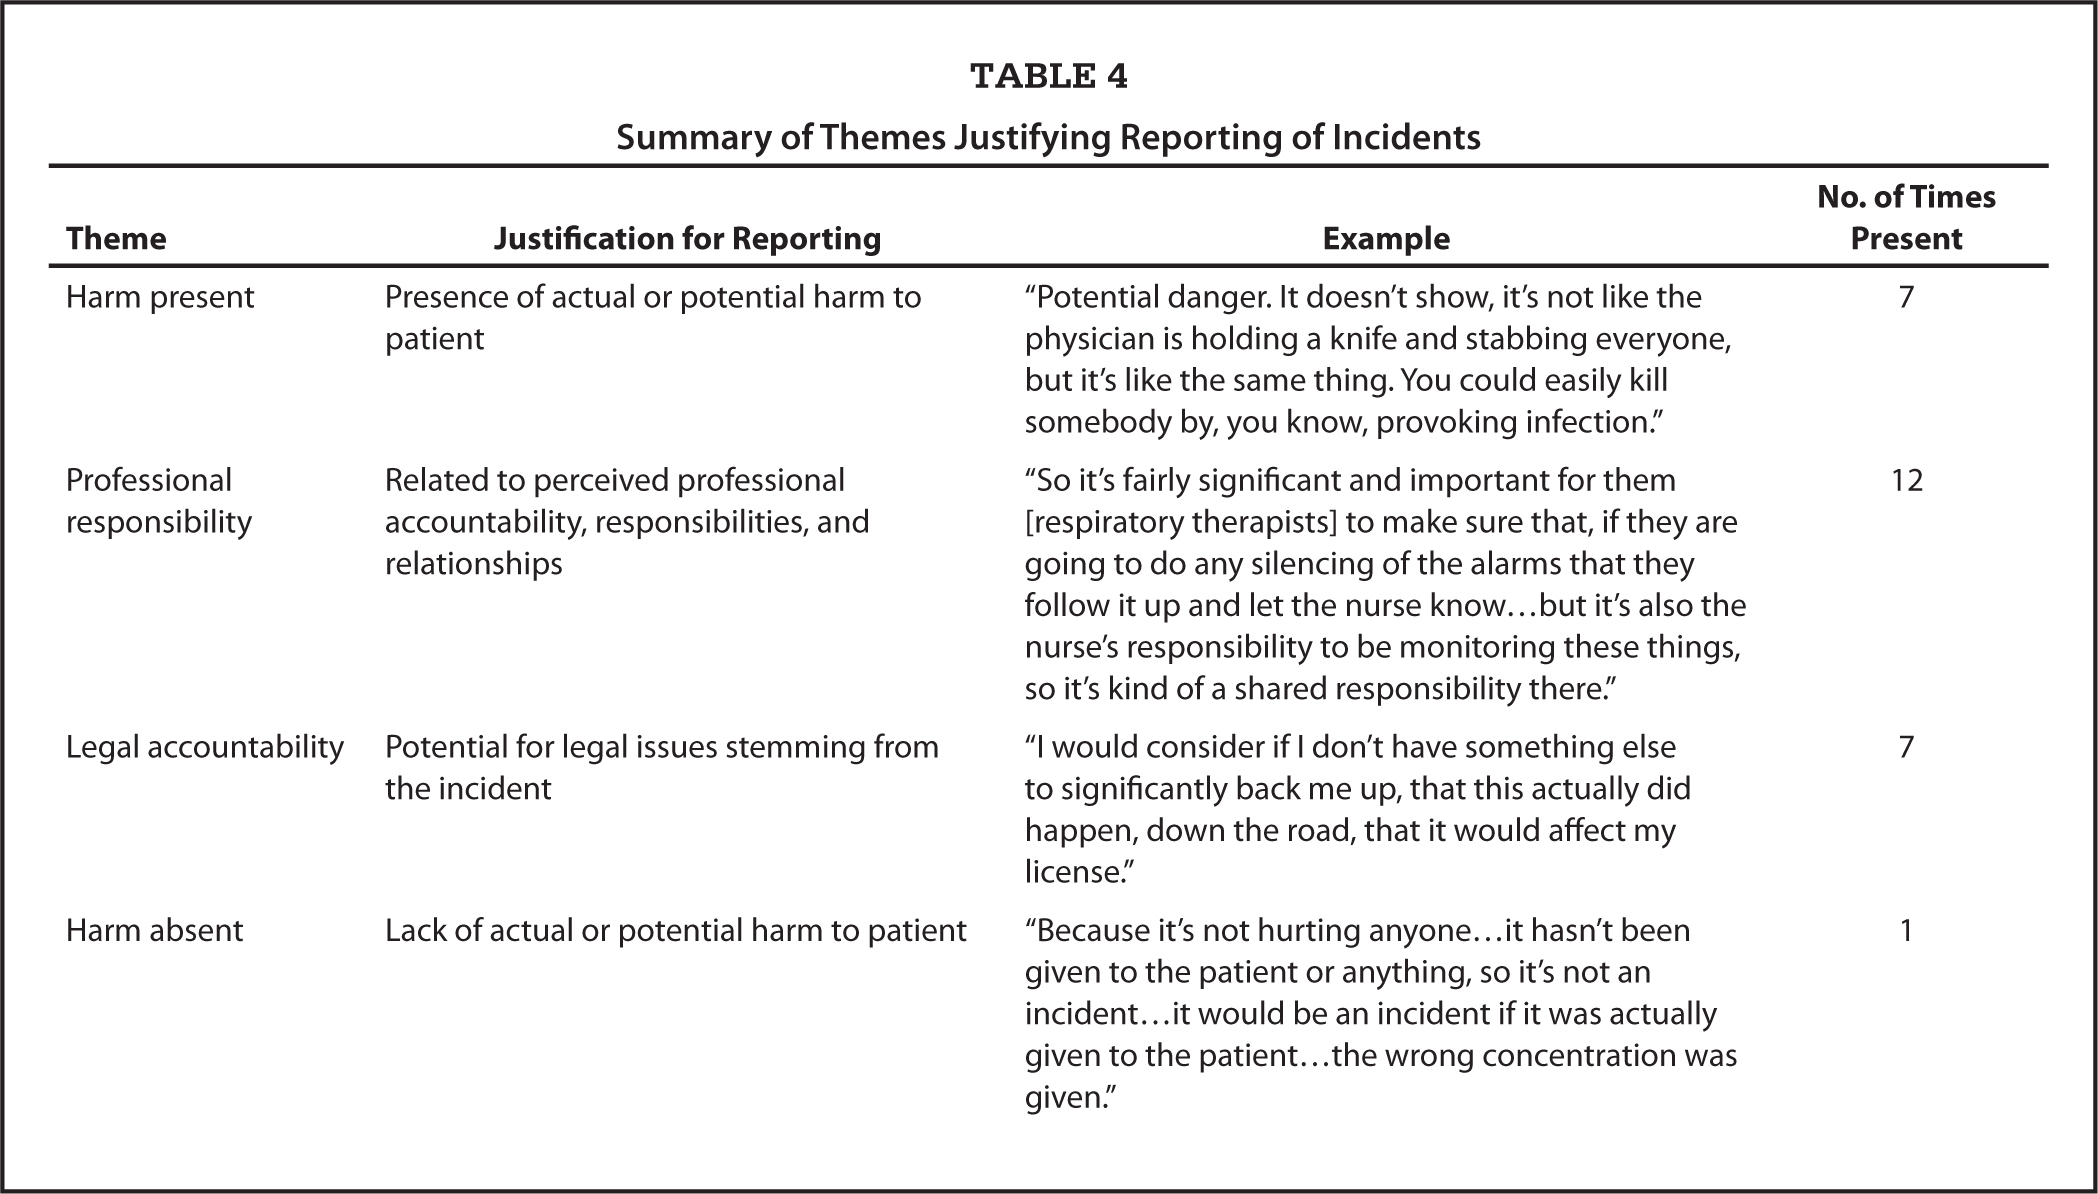 Summary of Themes Justifying Reporting of Incidents